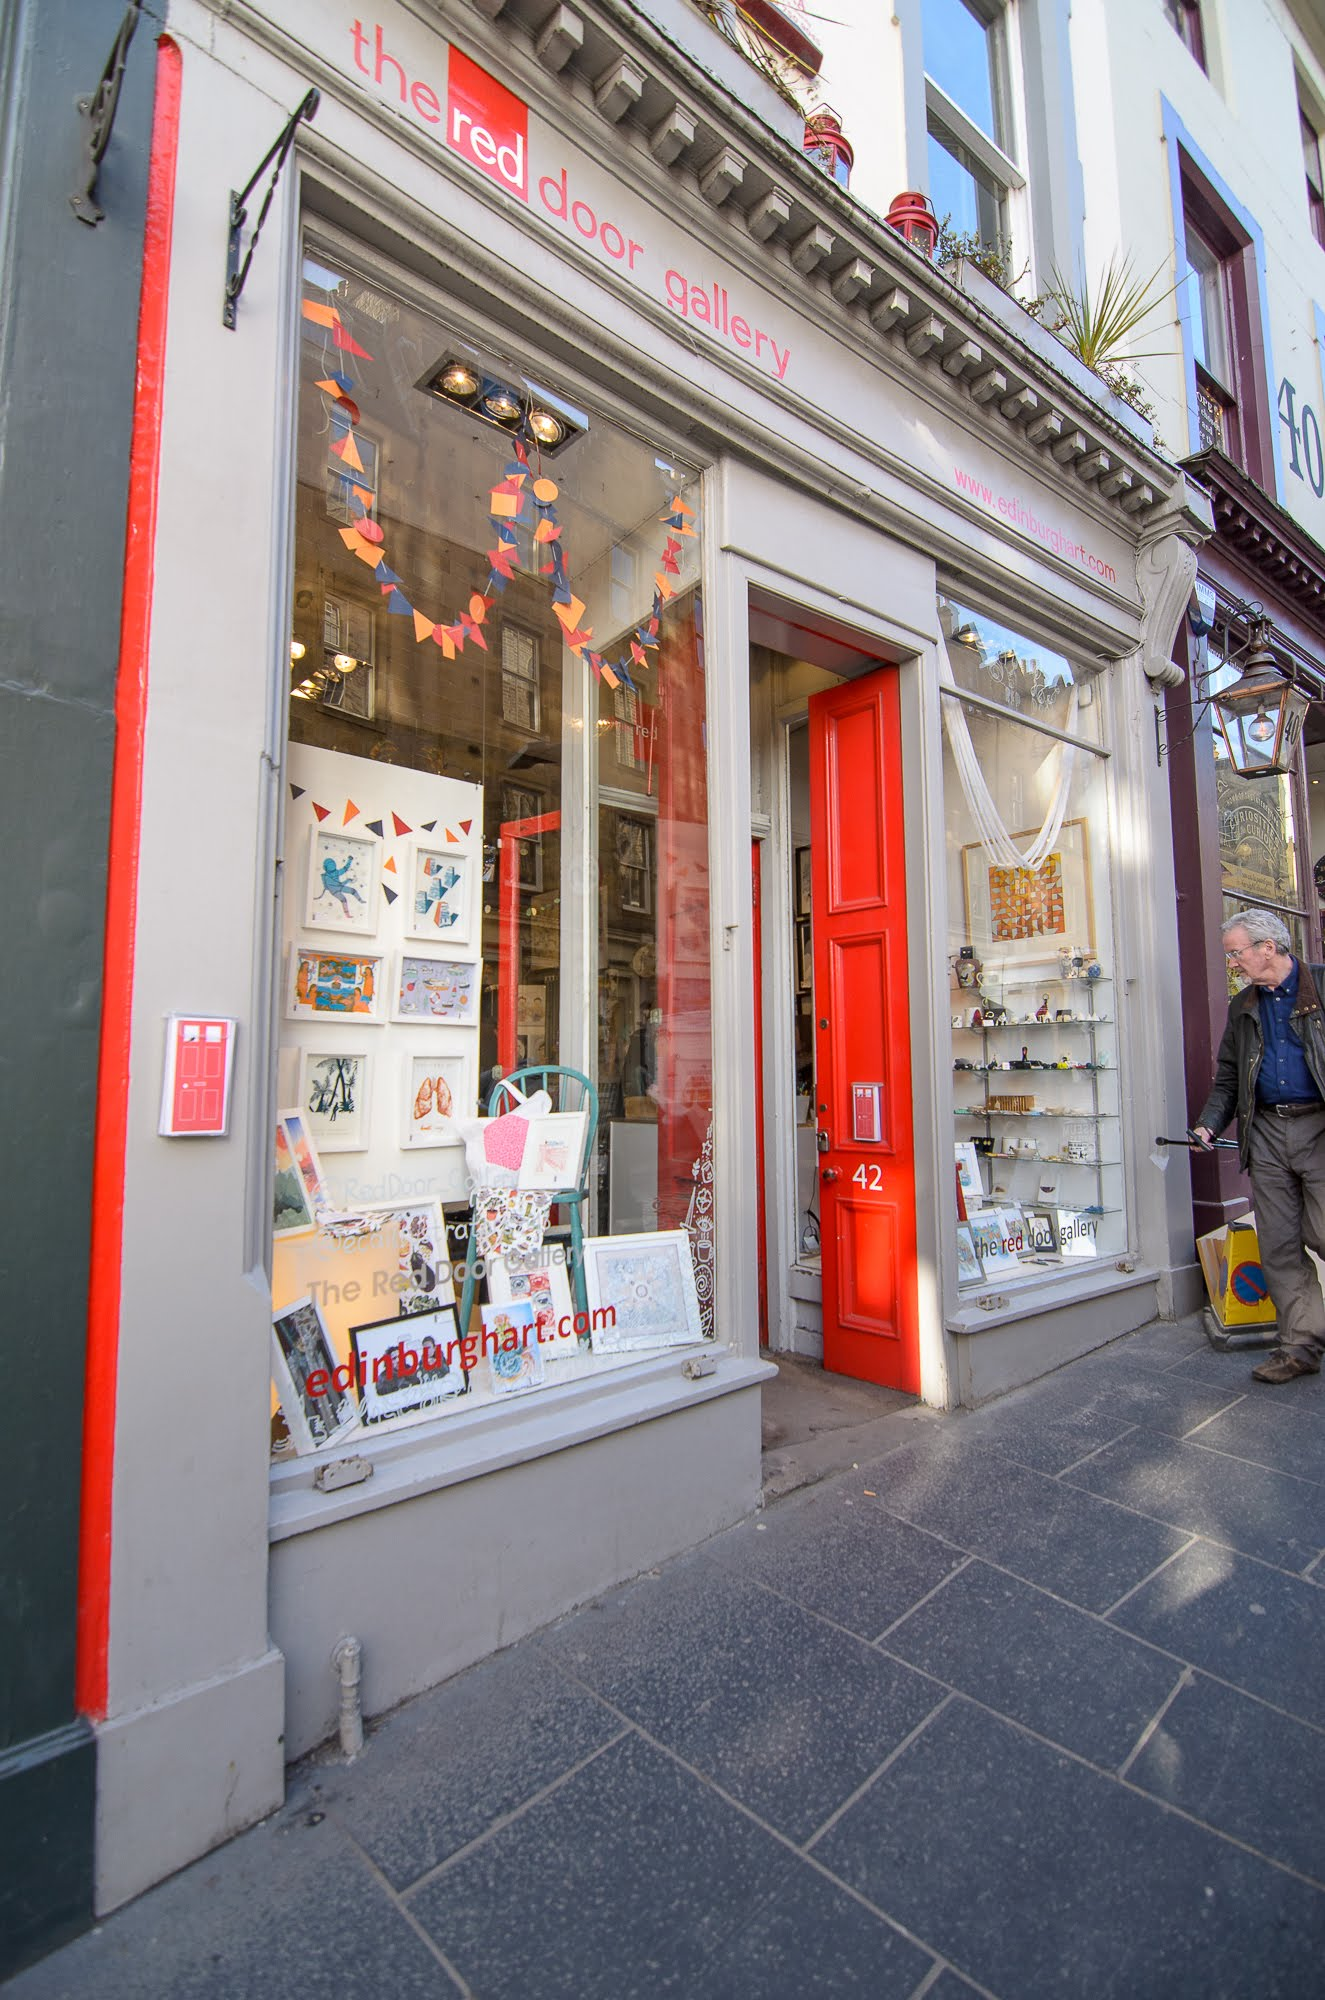 The Red Door Gallery's red door